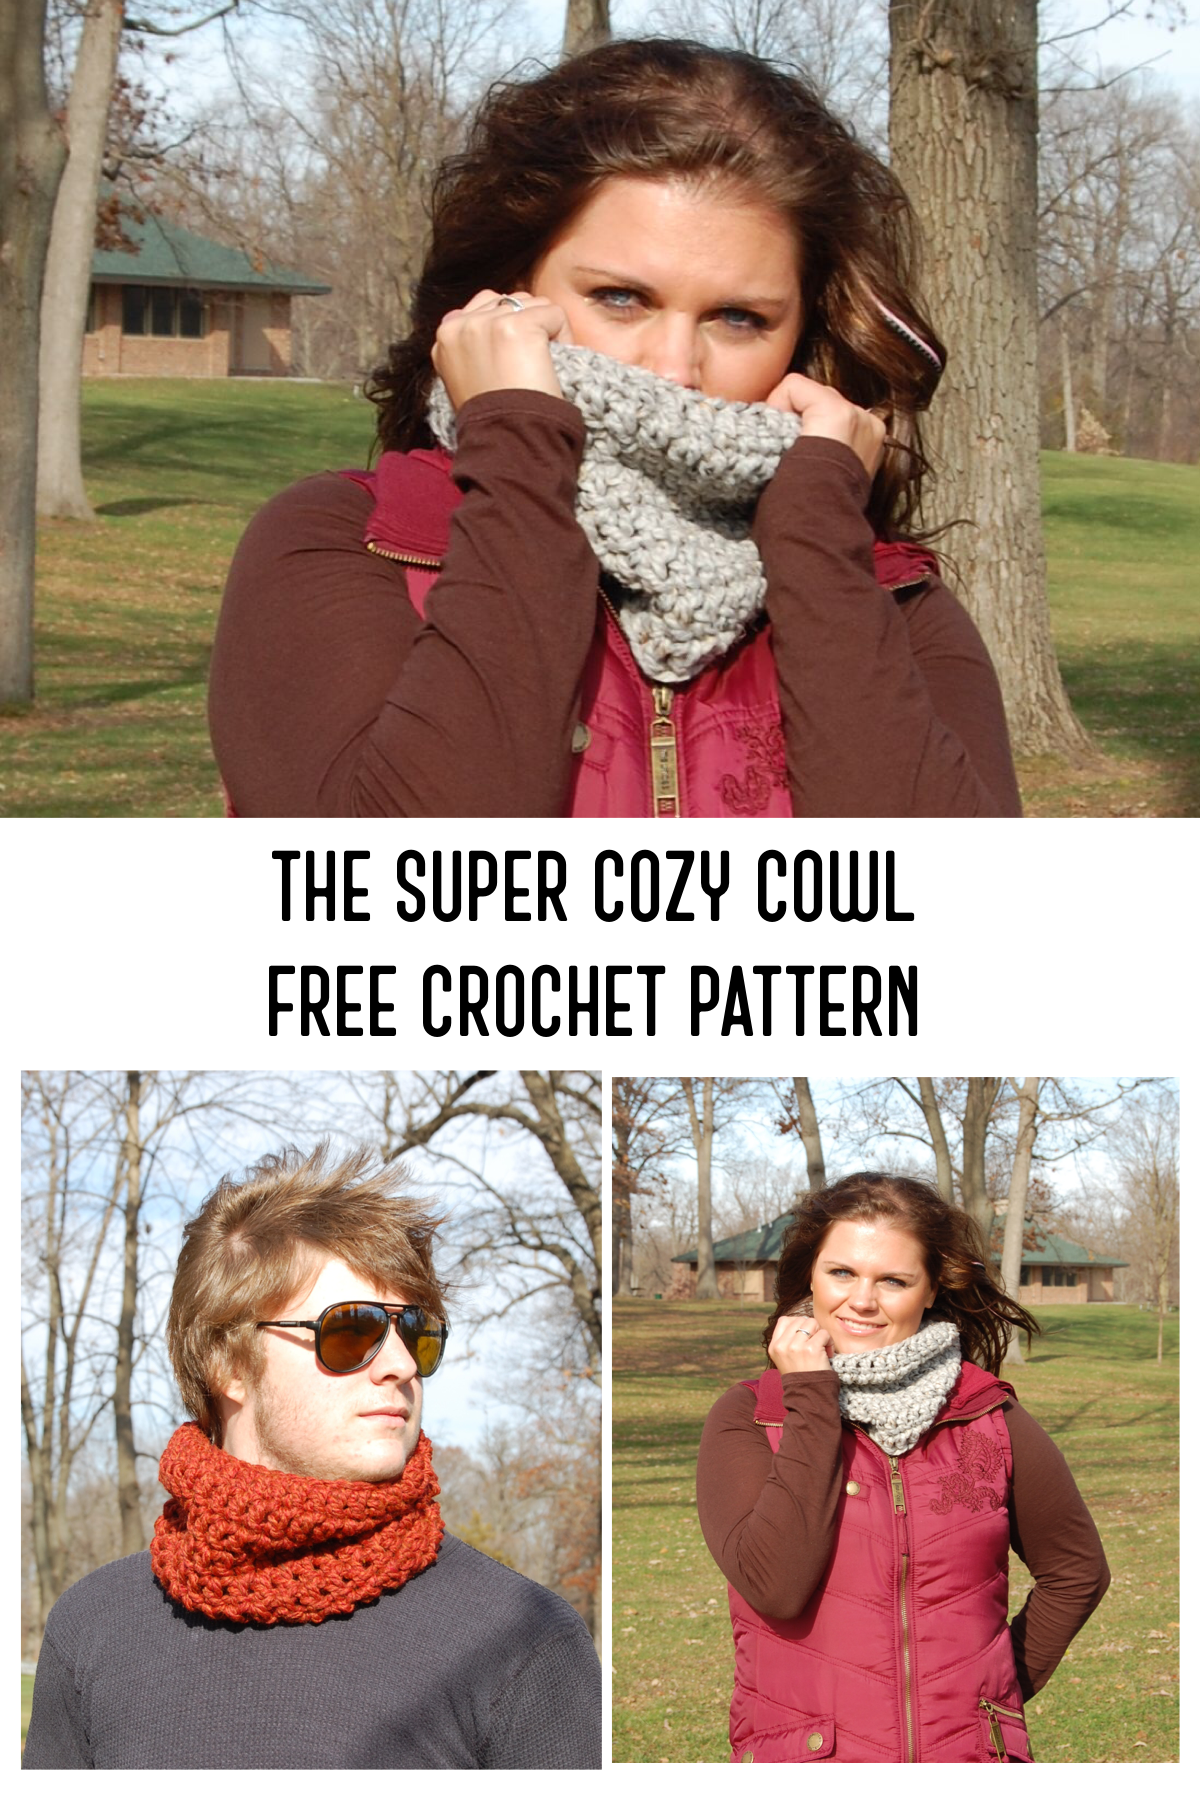 QUick_Crochet_Cowl-free-pattern.png